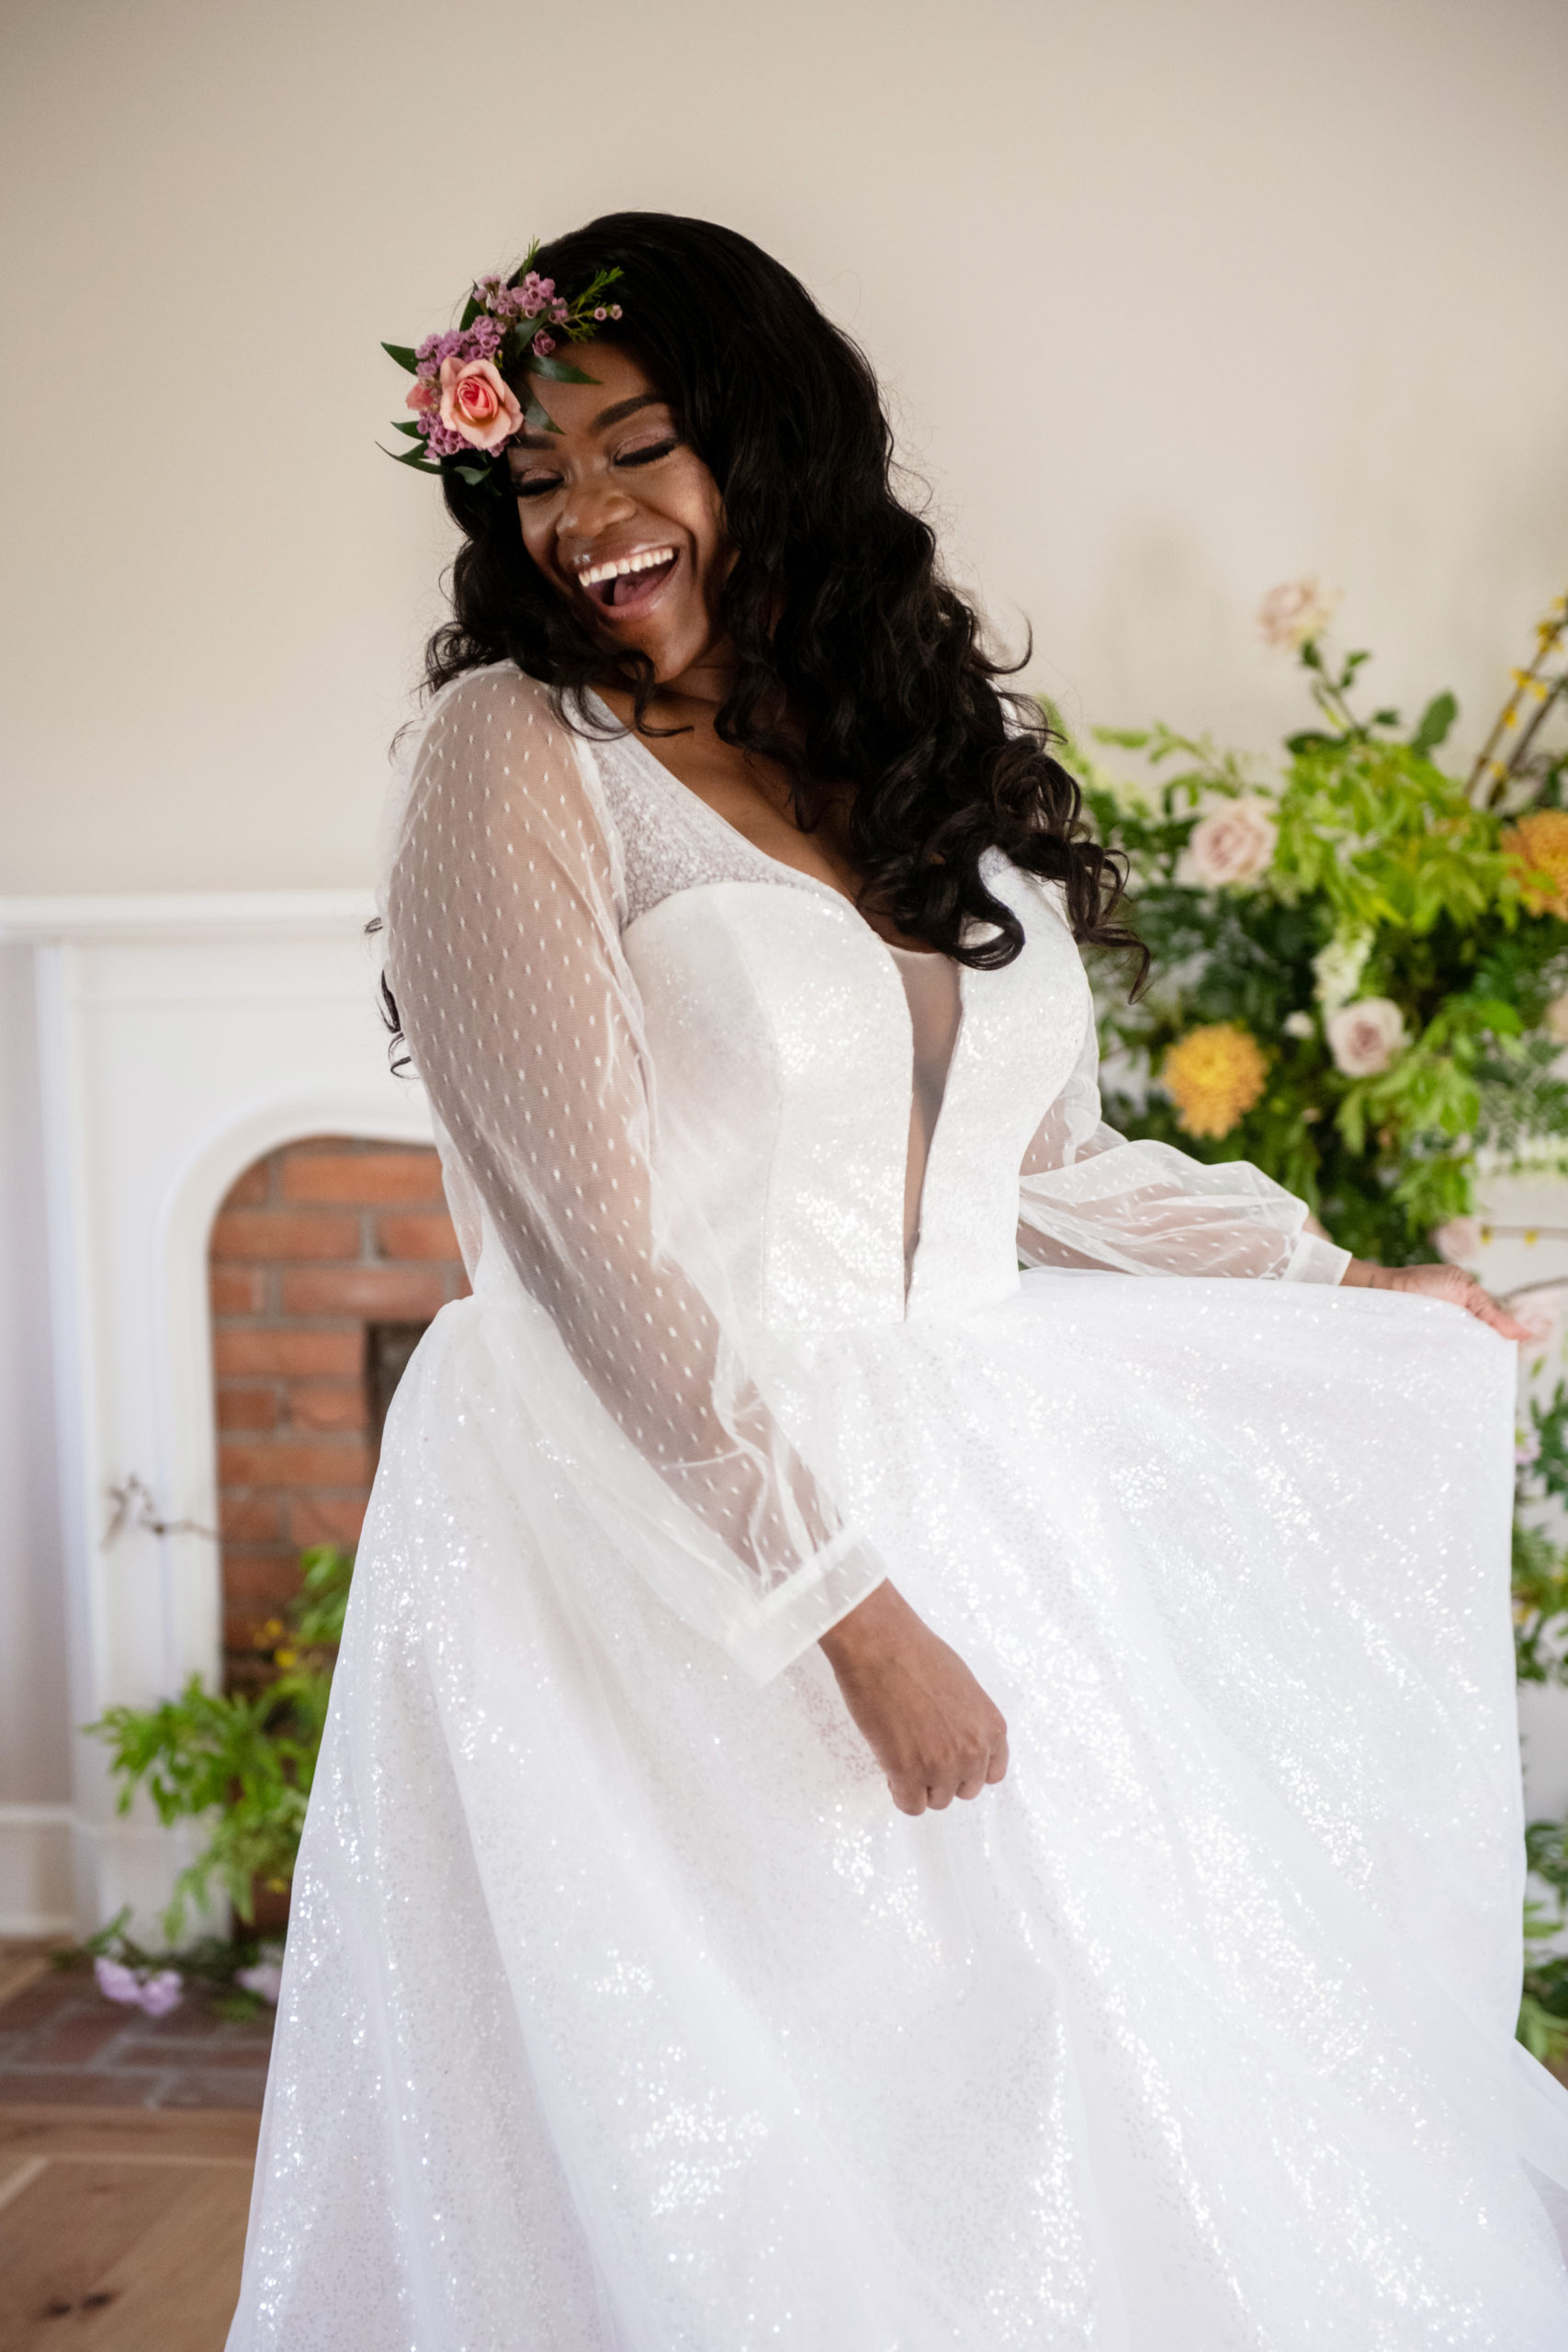 say yes to your dream wedding dress | andi b bridal